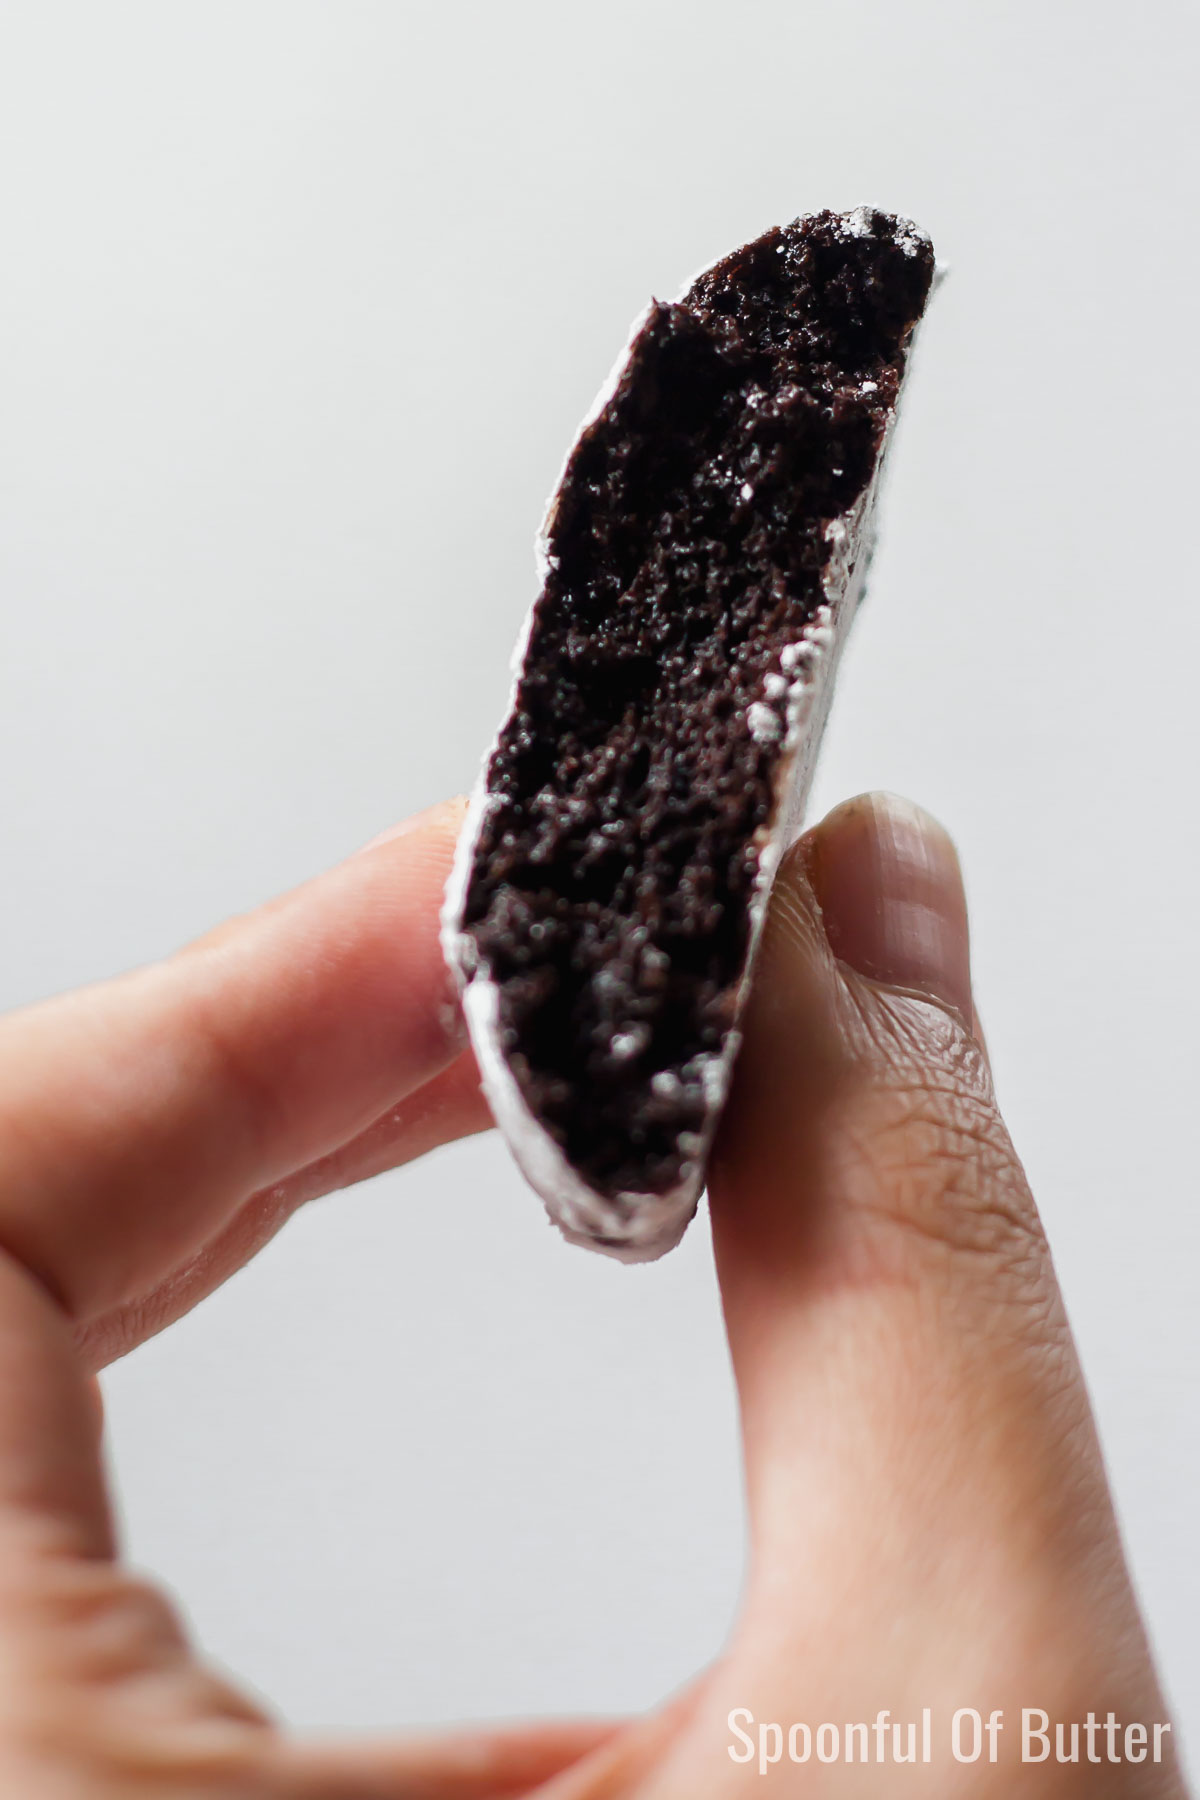 Close-up photo of black cocoa crinkle cookies